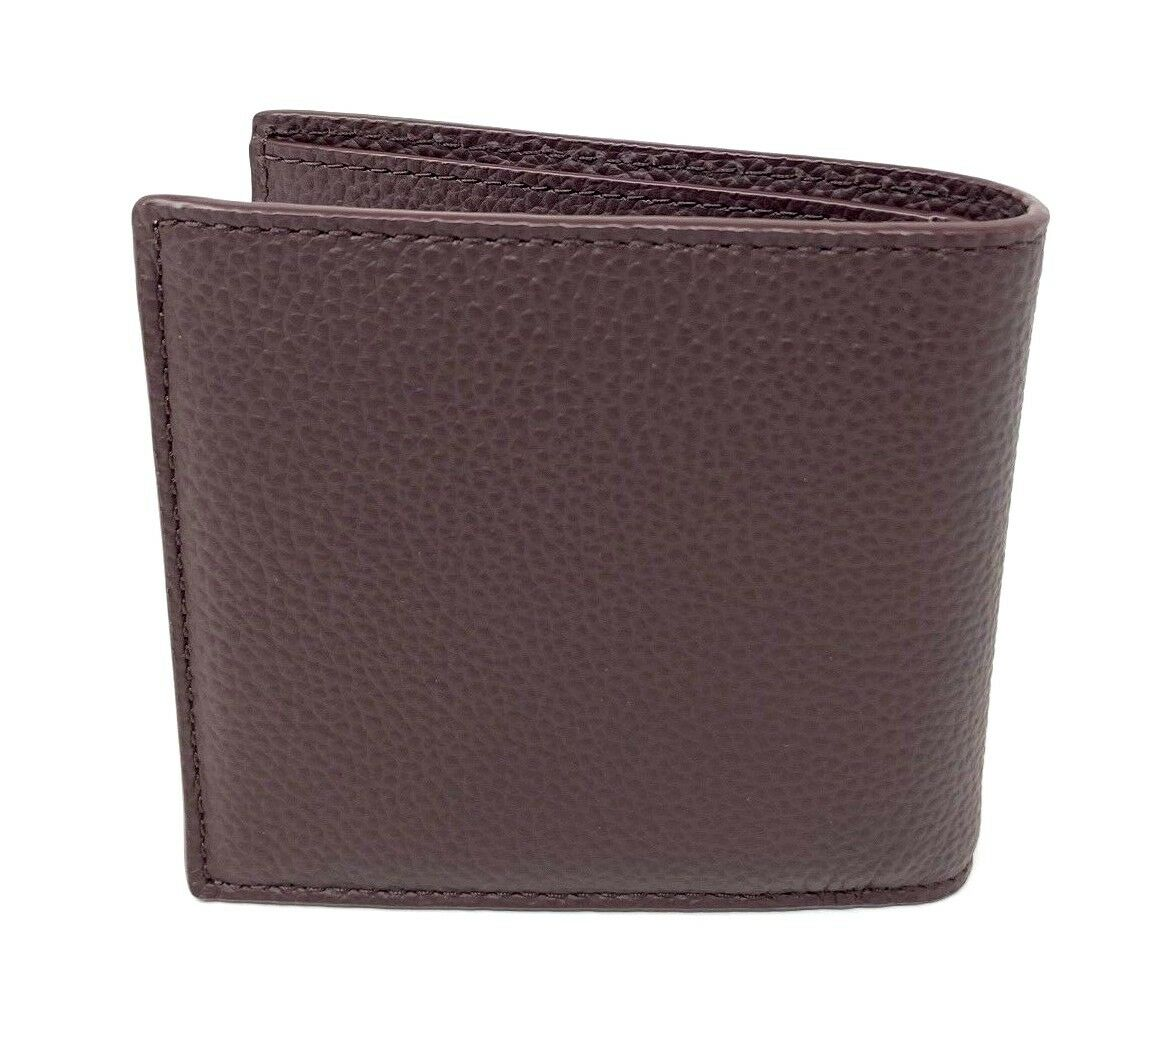 Coach Double Billfold 1941 NY House of Leather Oxblood Men's Wallet F24647 $175